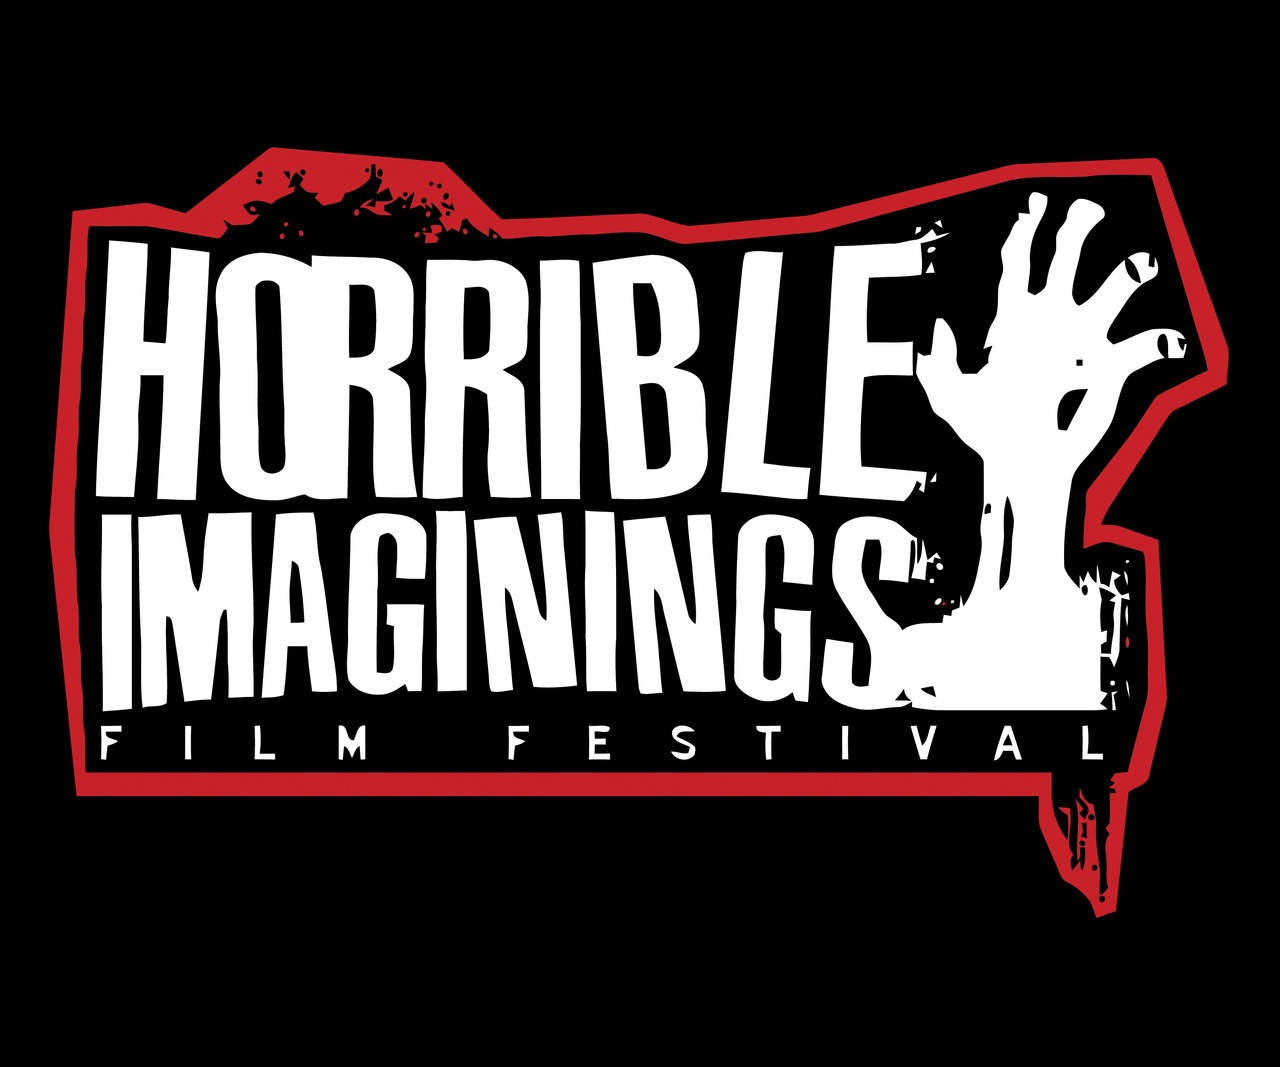 Tickets to Horrible Imaginings are on sale NOW!  The festival is November 10-11 at the Tenth Avenue Theatre in San Diego and features  quite a few incredible horror films  including some Viscera and Etheria selections such as Maude Michaud's RED, Rebekah McKendry's THE DUMP, and Karen Lam's THE STOLEN and my short STELLA BUIO plays on the first day!   Miguel Rodriguez, of the  Monster Island Resort Podcast , loves horror flicks and always puts together an incredible show. If you're in the area or planning on traveling there that weekend, I highly recommend going!  Get your tickets now!